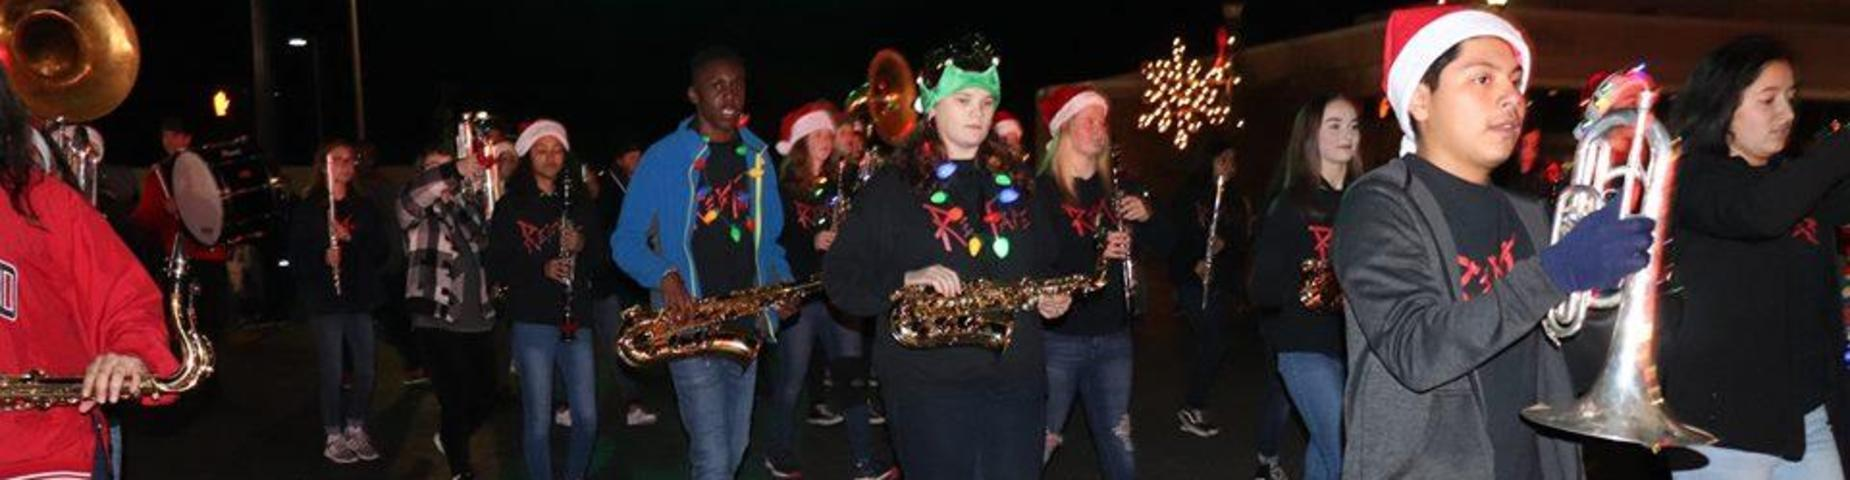 Mayfield High School Band marching in Christmas Parade